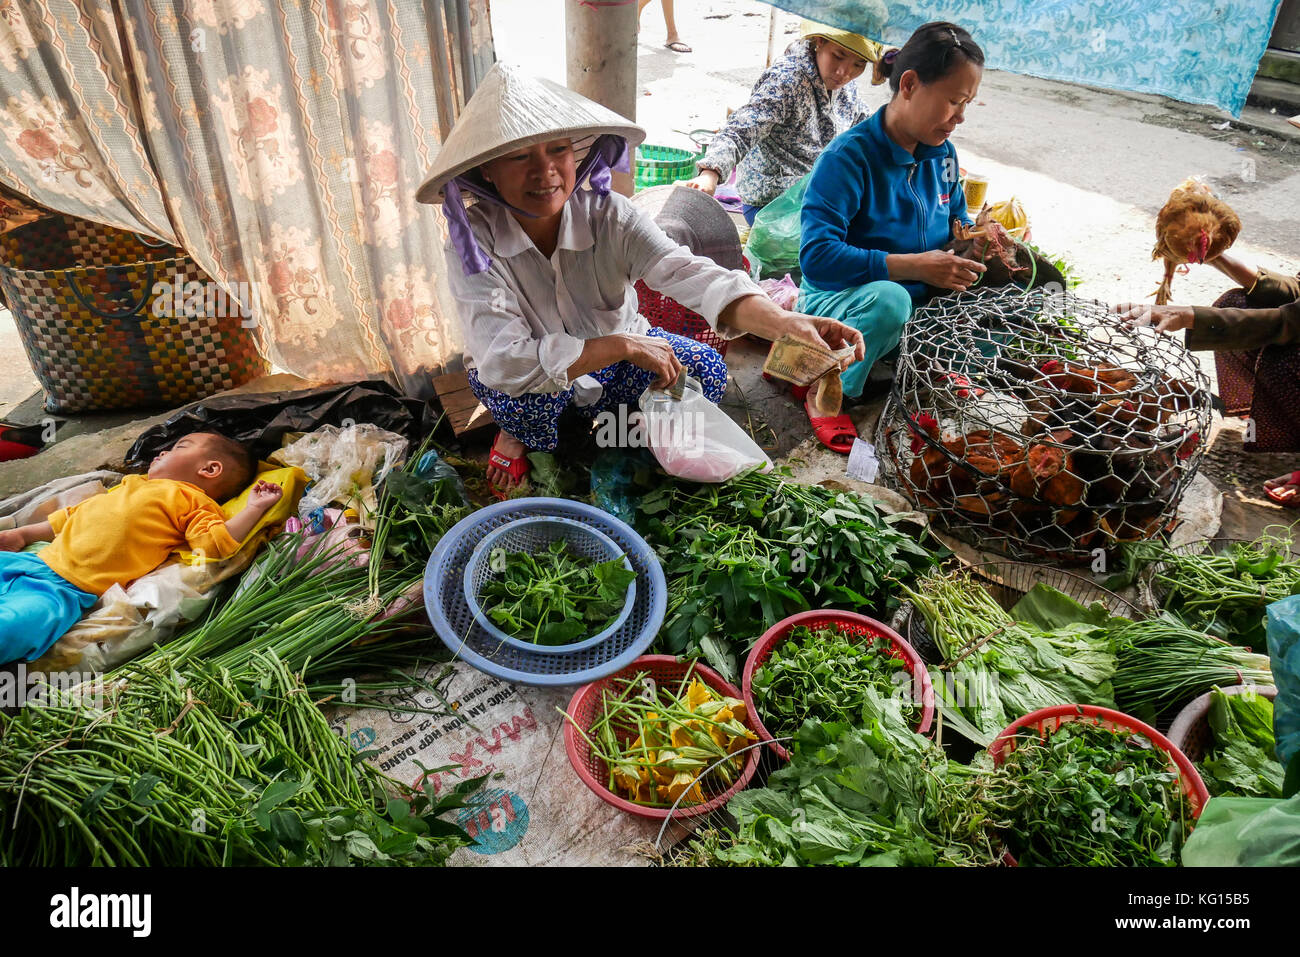 Mature females selling vegetables and live chickens, small baby sleeps in background. Thanh Toan Village market, - Stock Image